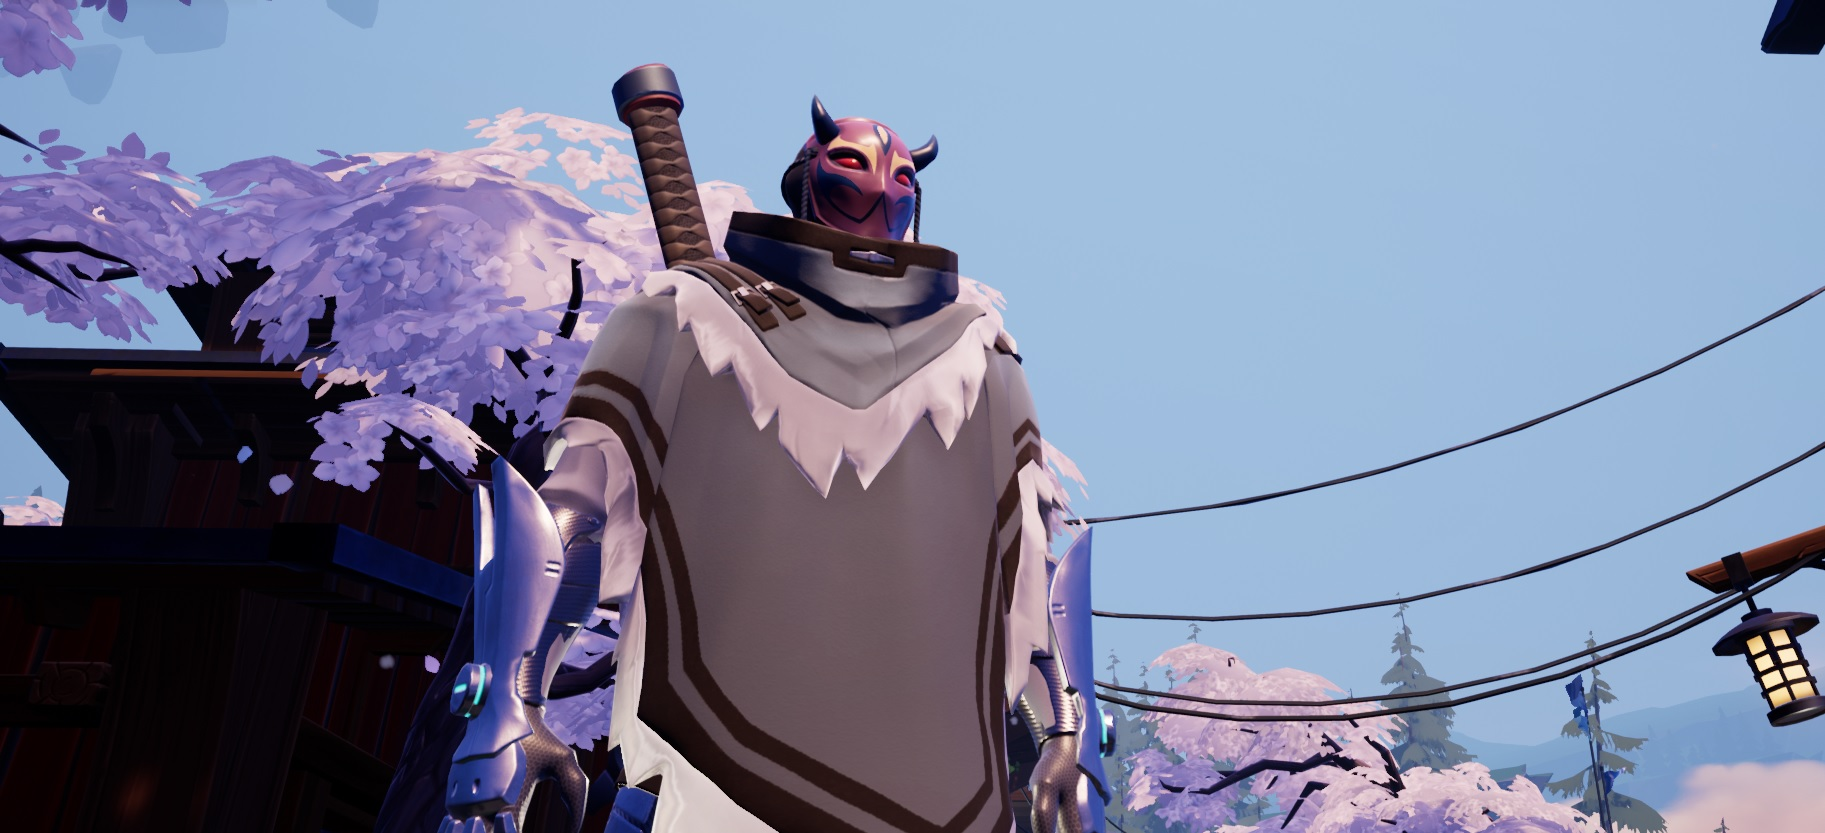 Dauntless' second major patch brings myriad quality of life